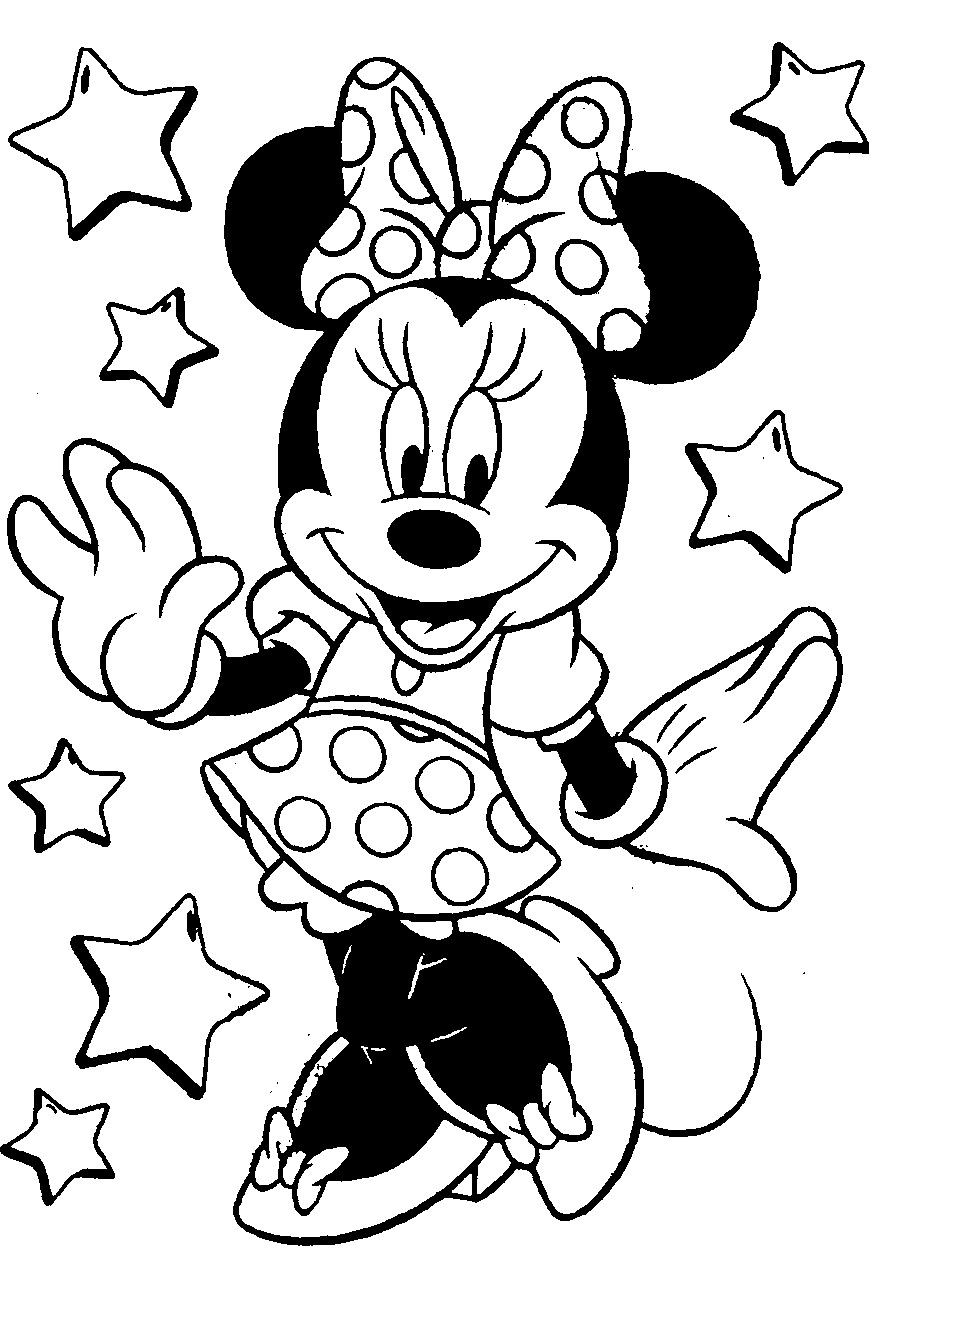 Mickey Mouse Coloring Pages For Girls  coloring pictures of minnie mouse Google Search